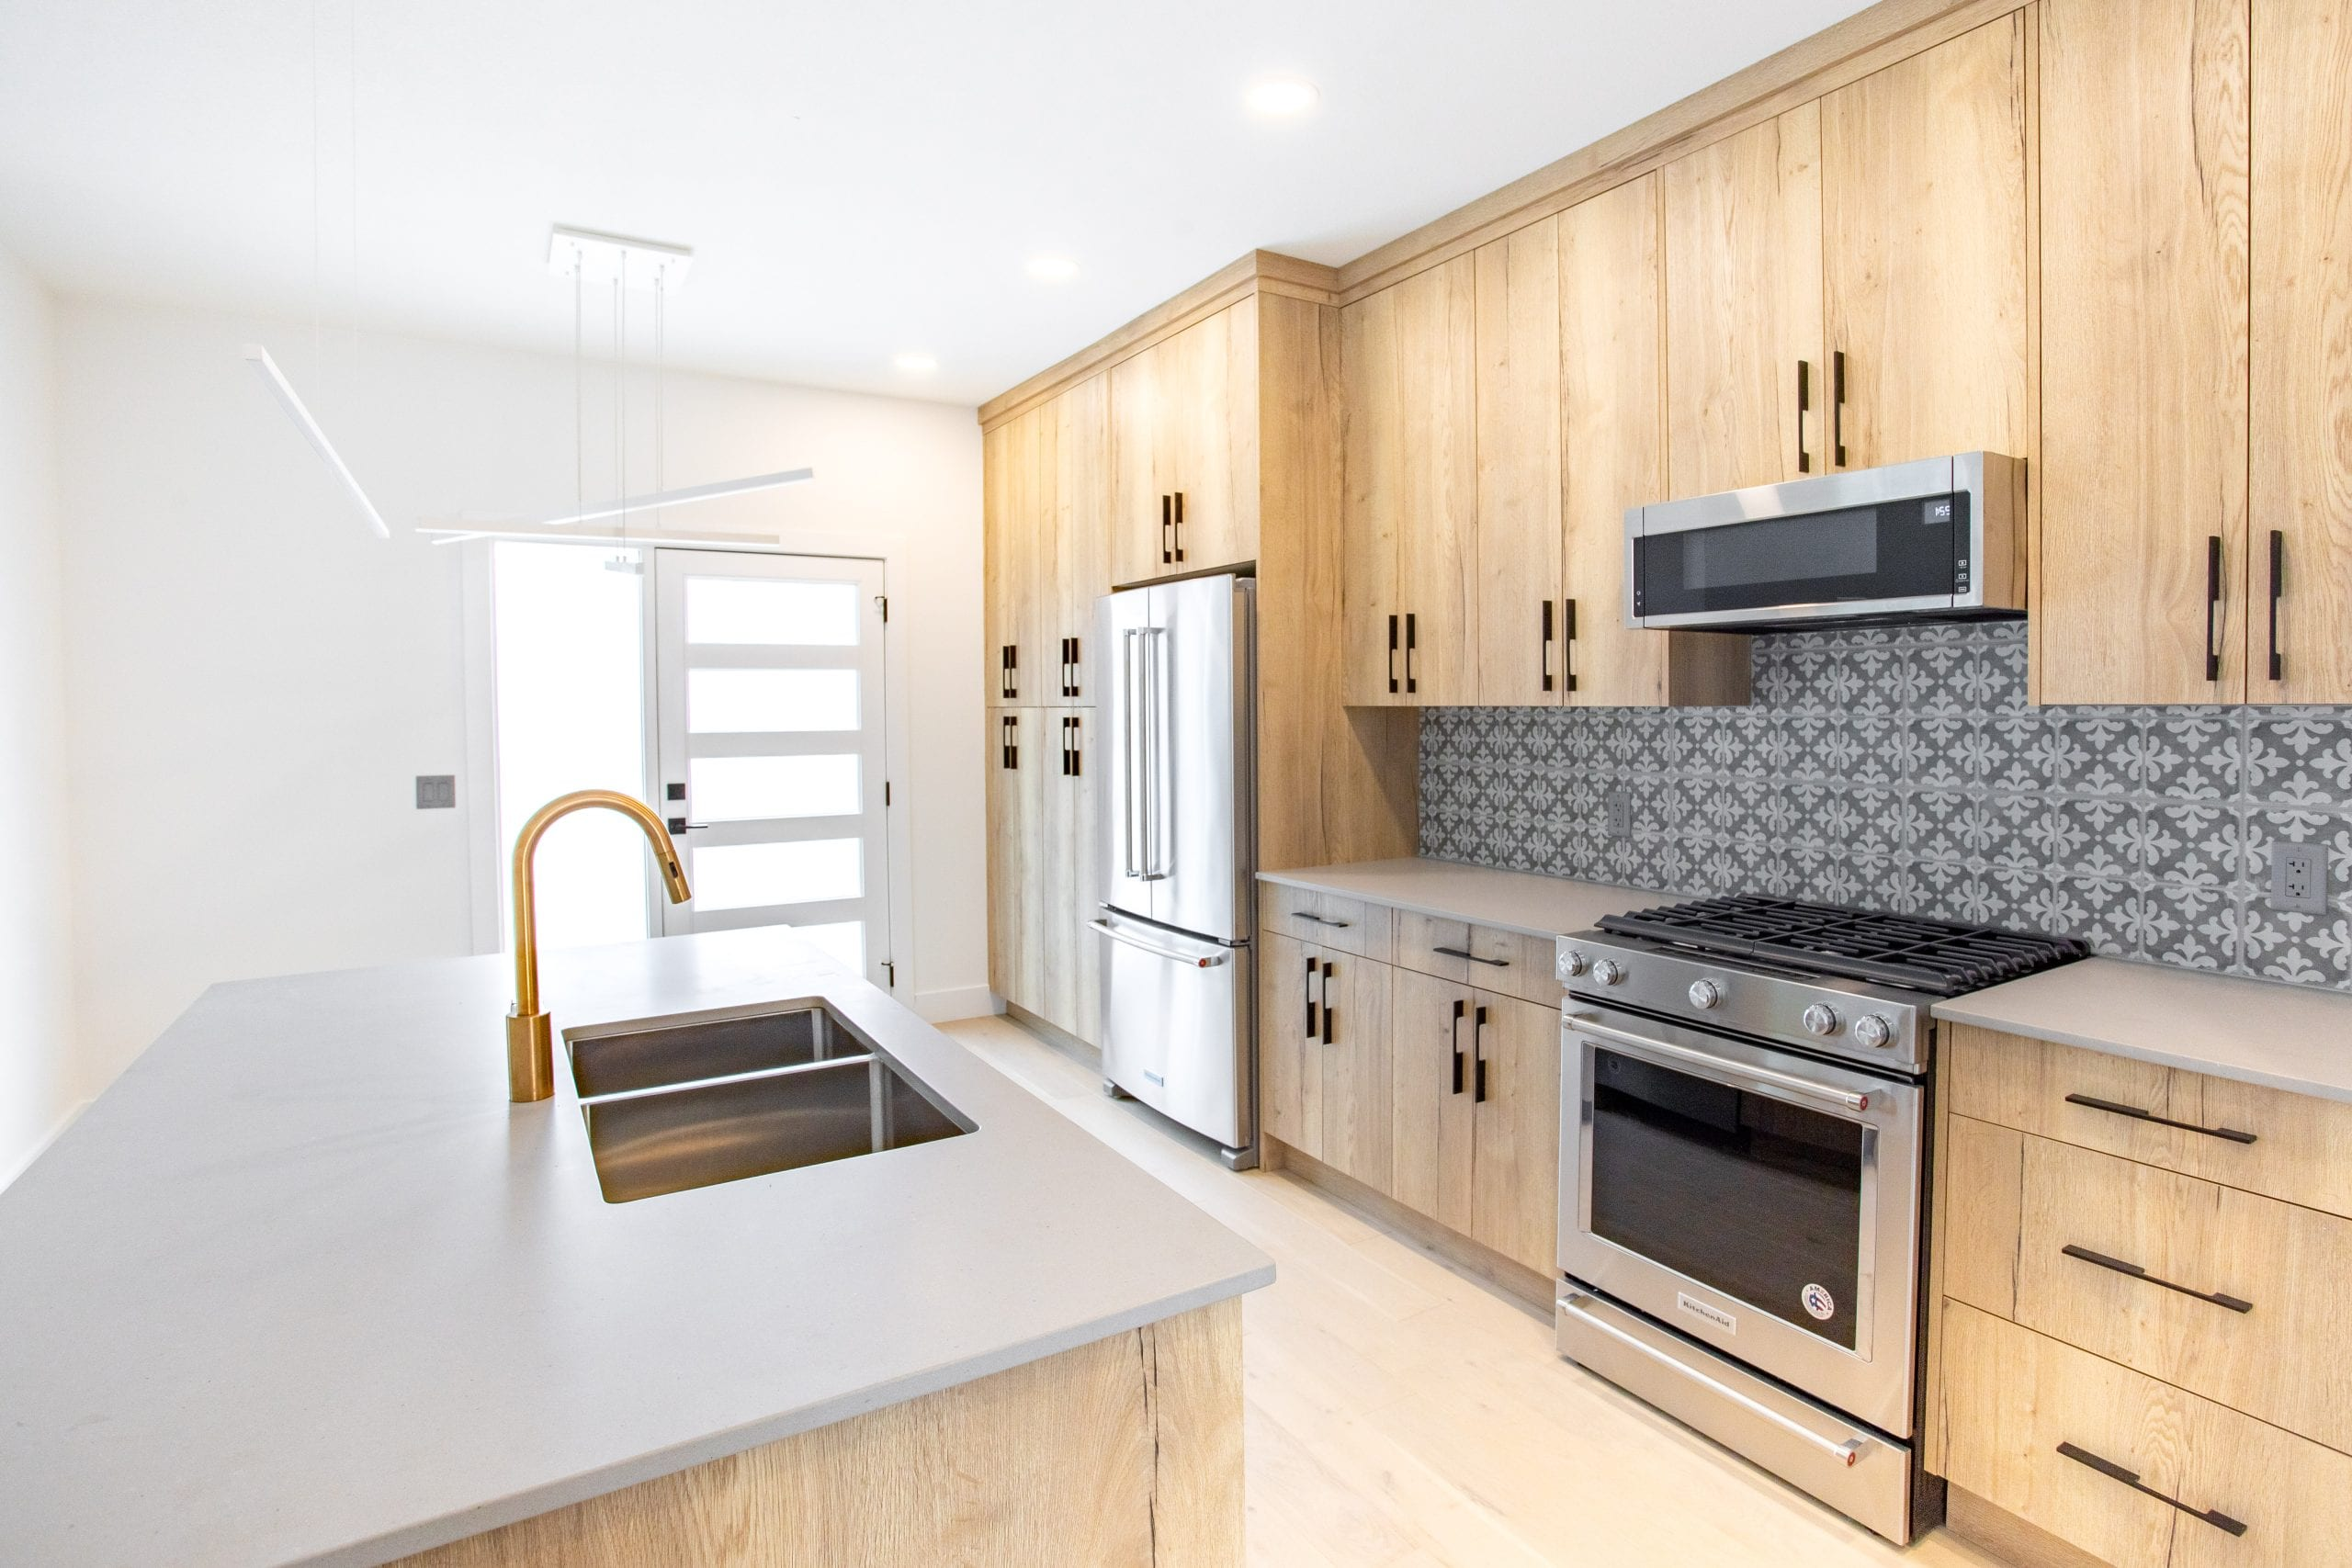 The Bay kitchen in Montauk colour palette with quartz, KitchenAid stainless steel appliances at The Landing at Wood Lake